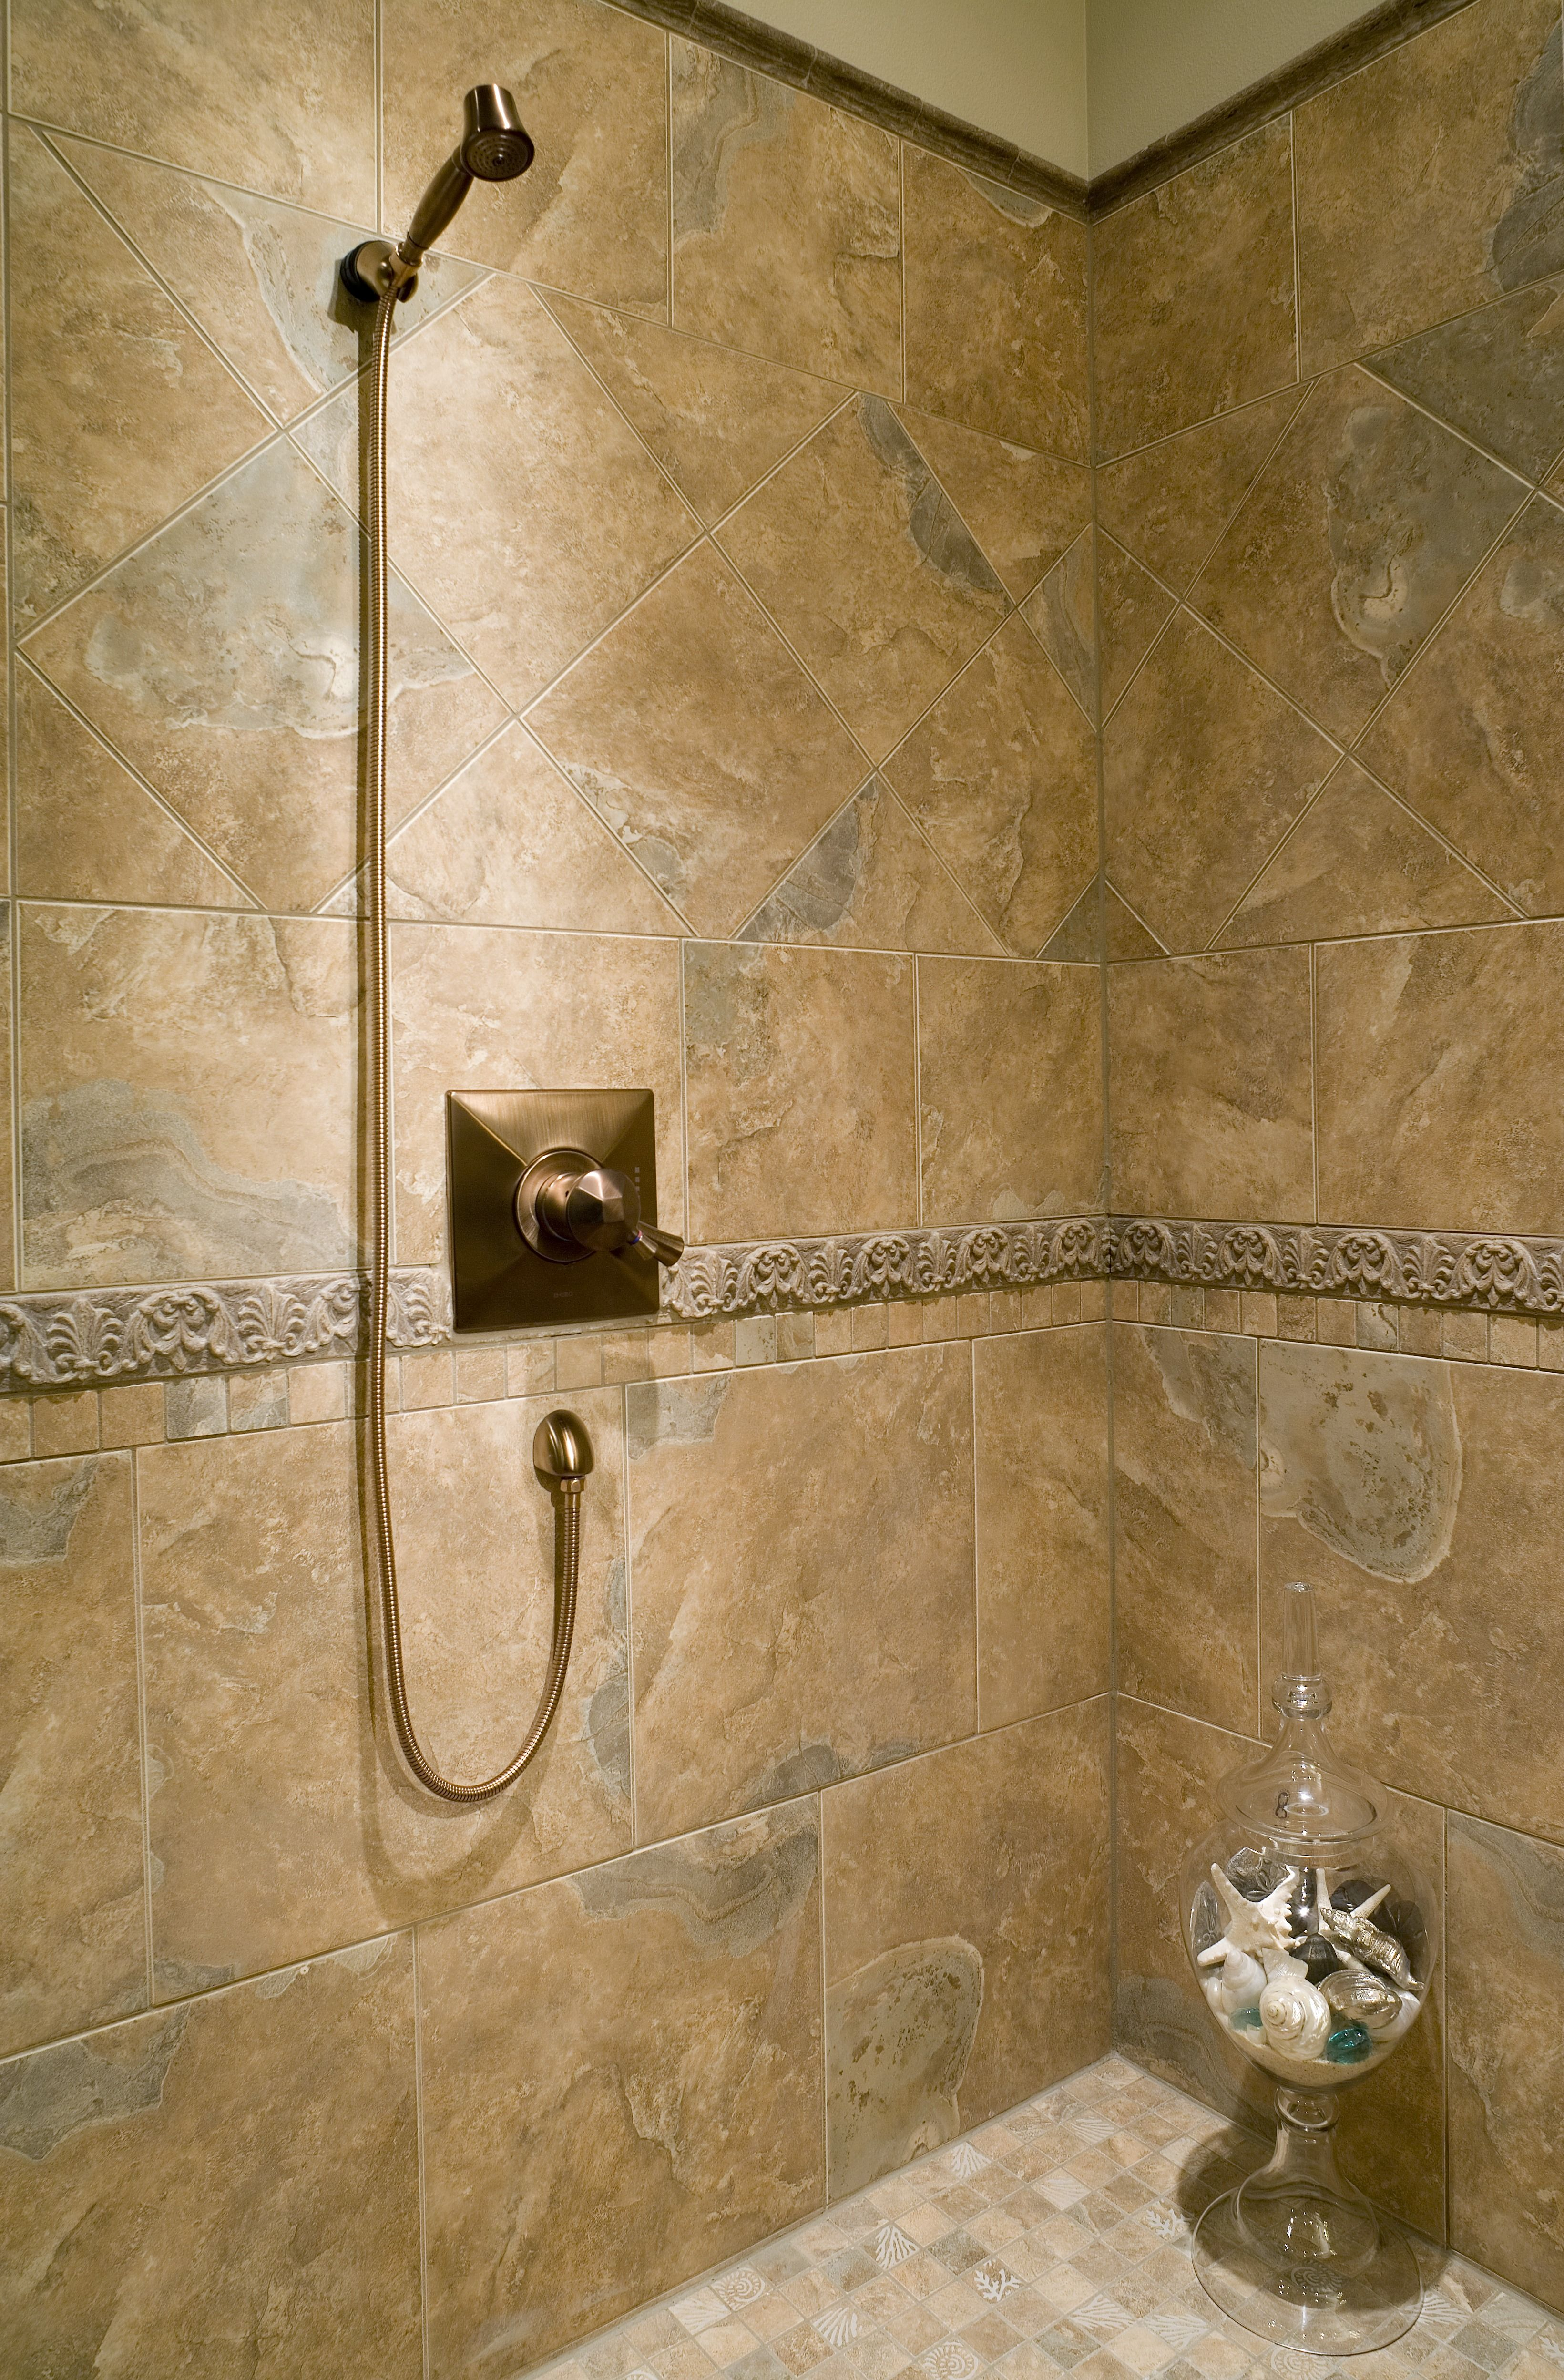 Decorative Accent Tiles For Bathroom 11 Perfect Shower Heads For Your Master Bathroom  Decorative